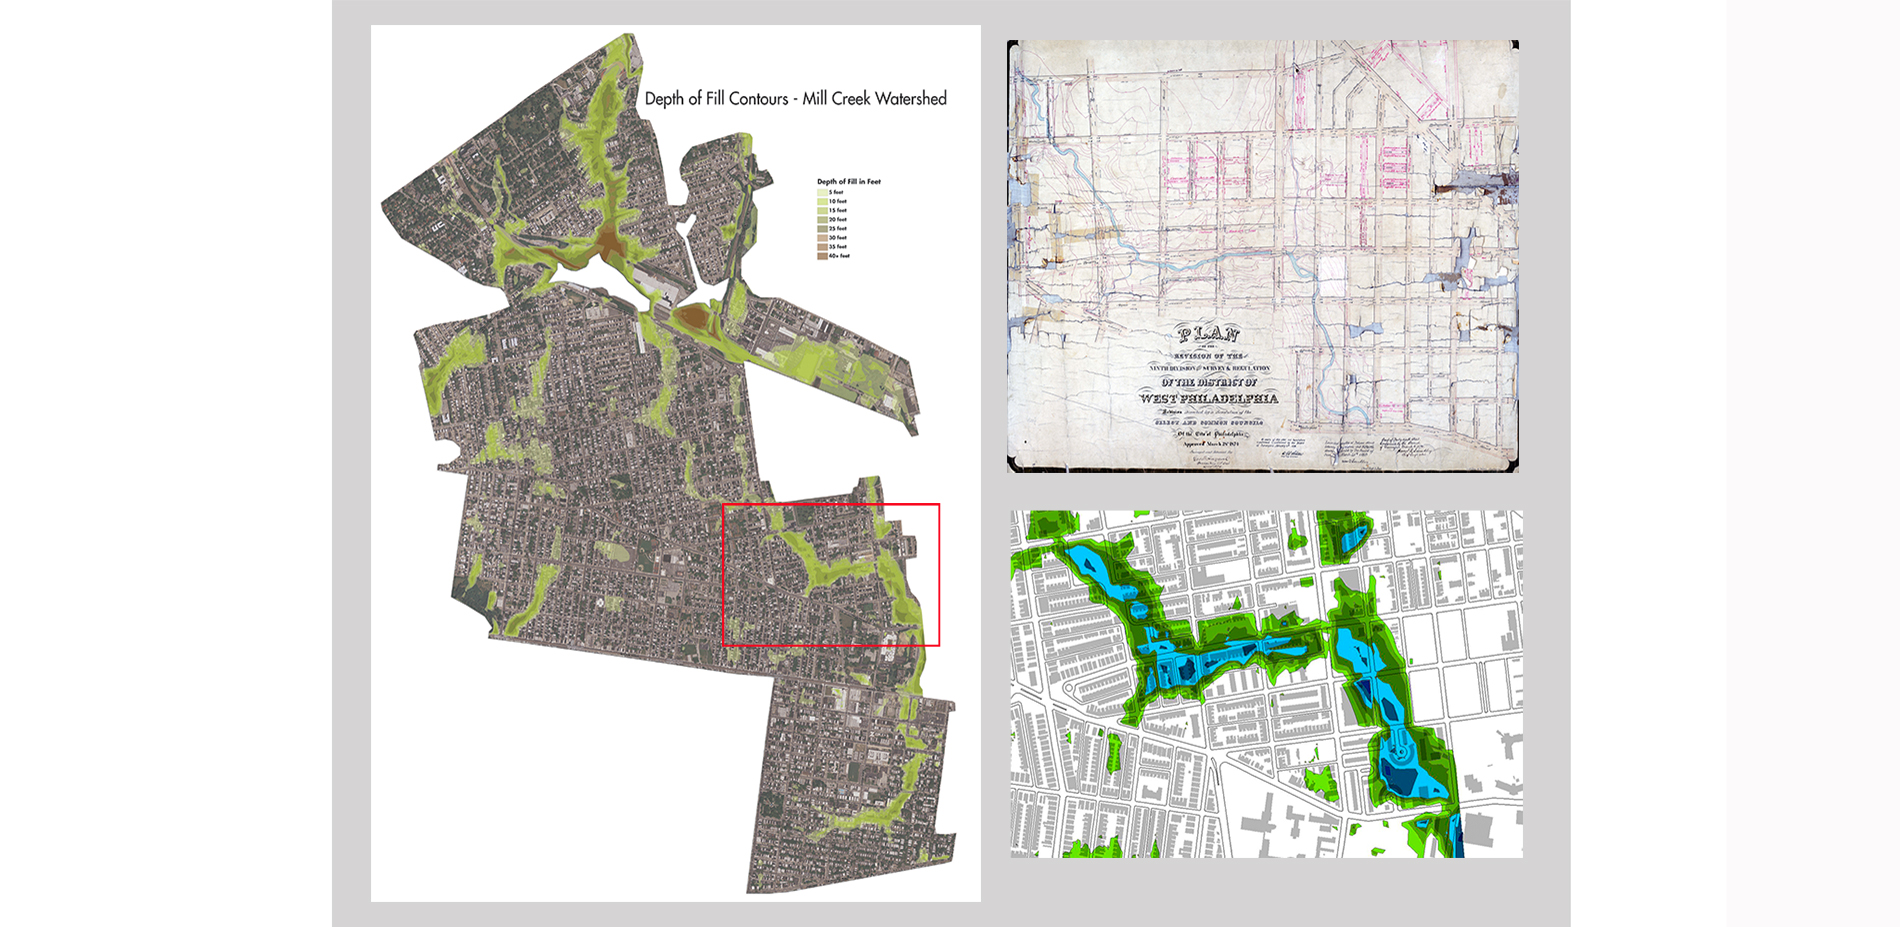 Mapping the Buried Floodplain (2015)